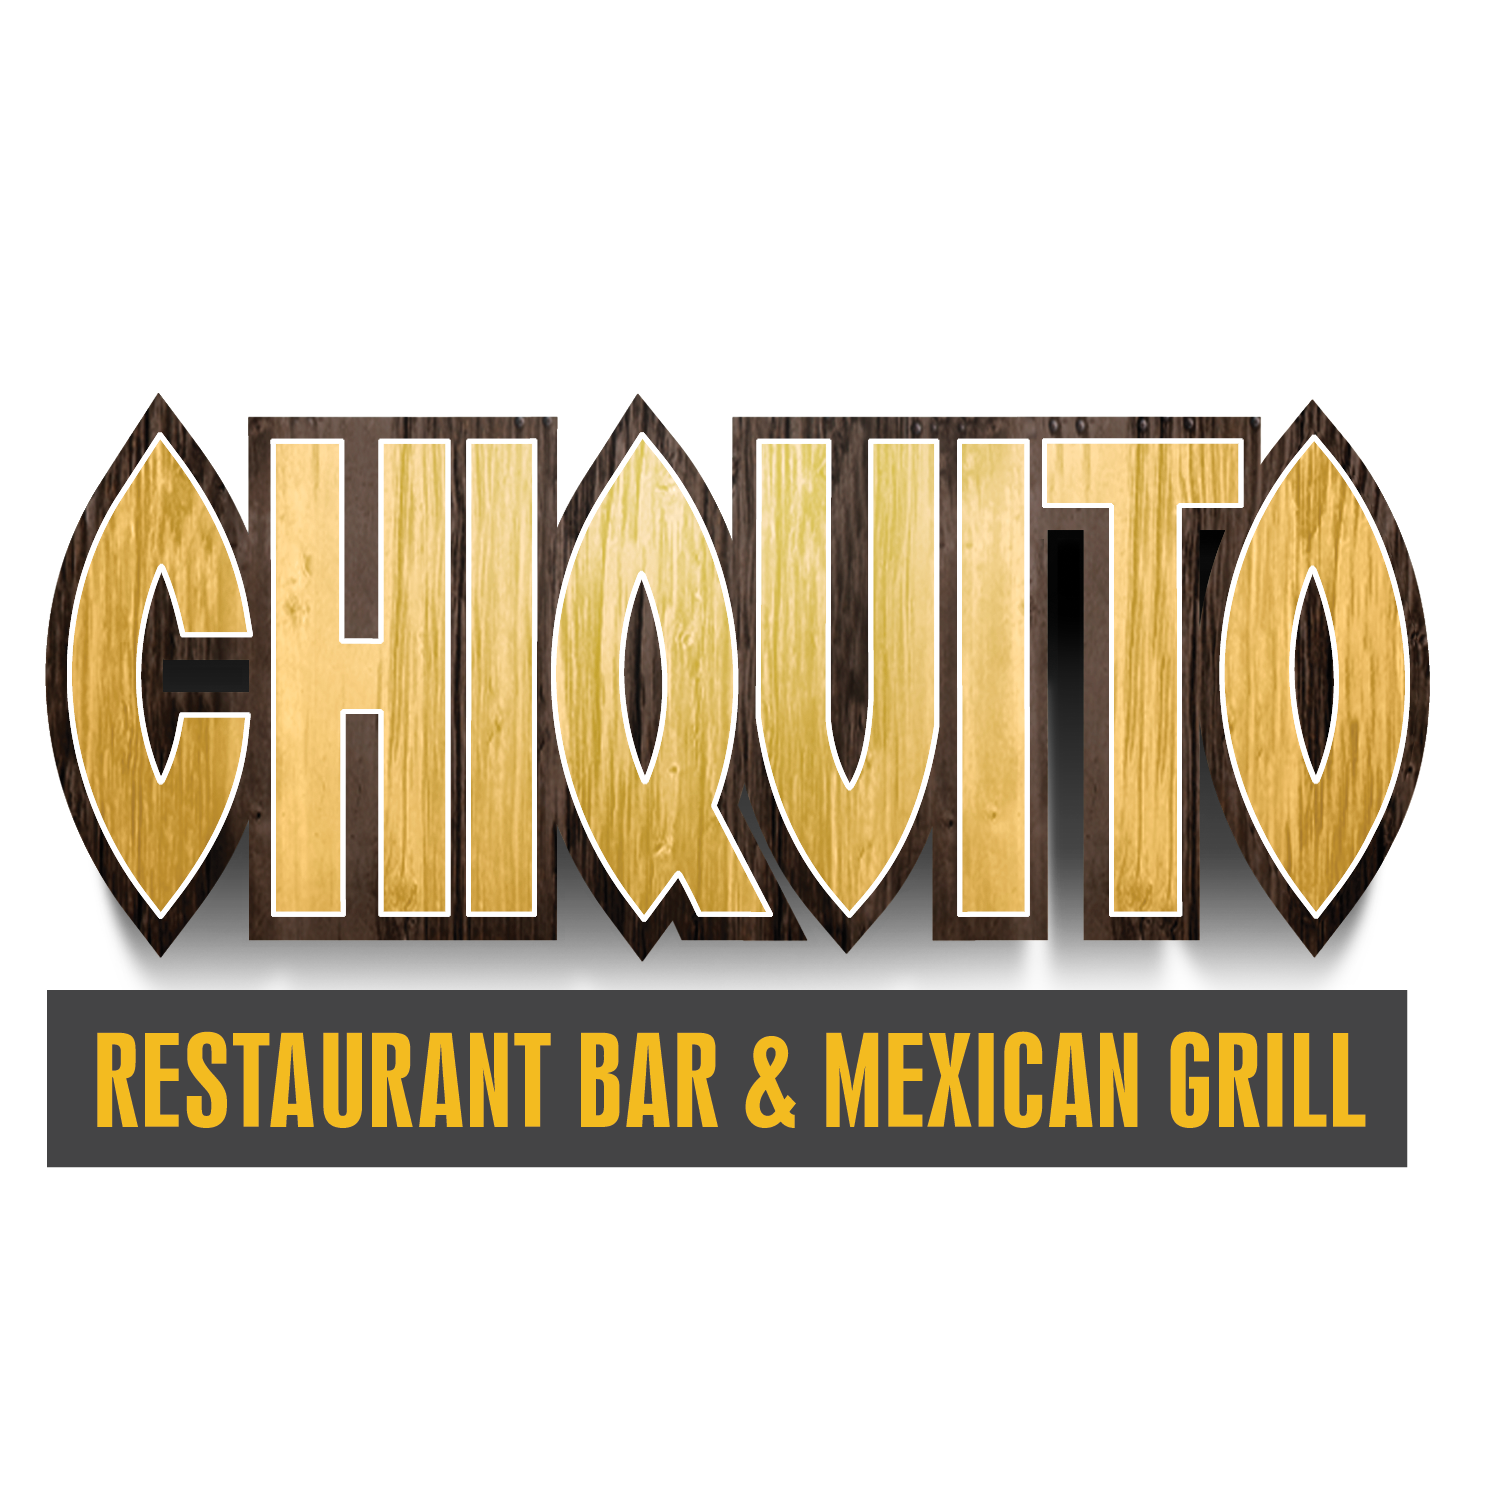 Chiquito Wolverhampton | Mexican & American Cuisine, Cocktails in Wolverhampton